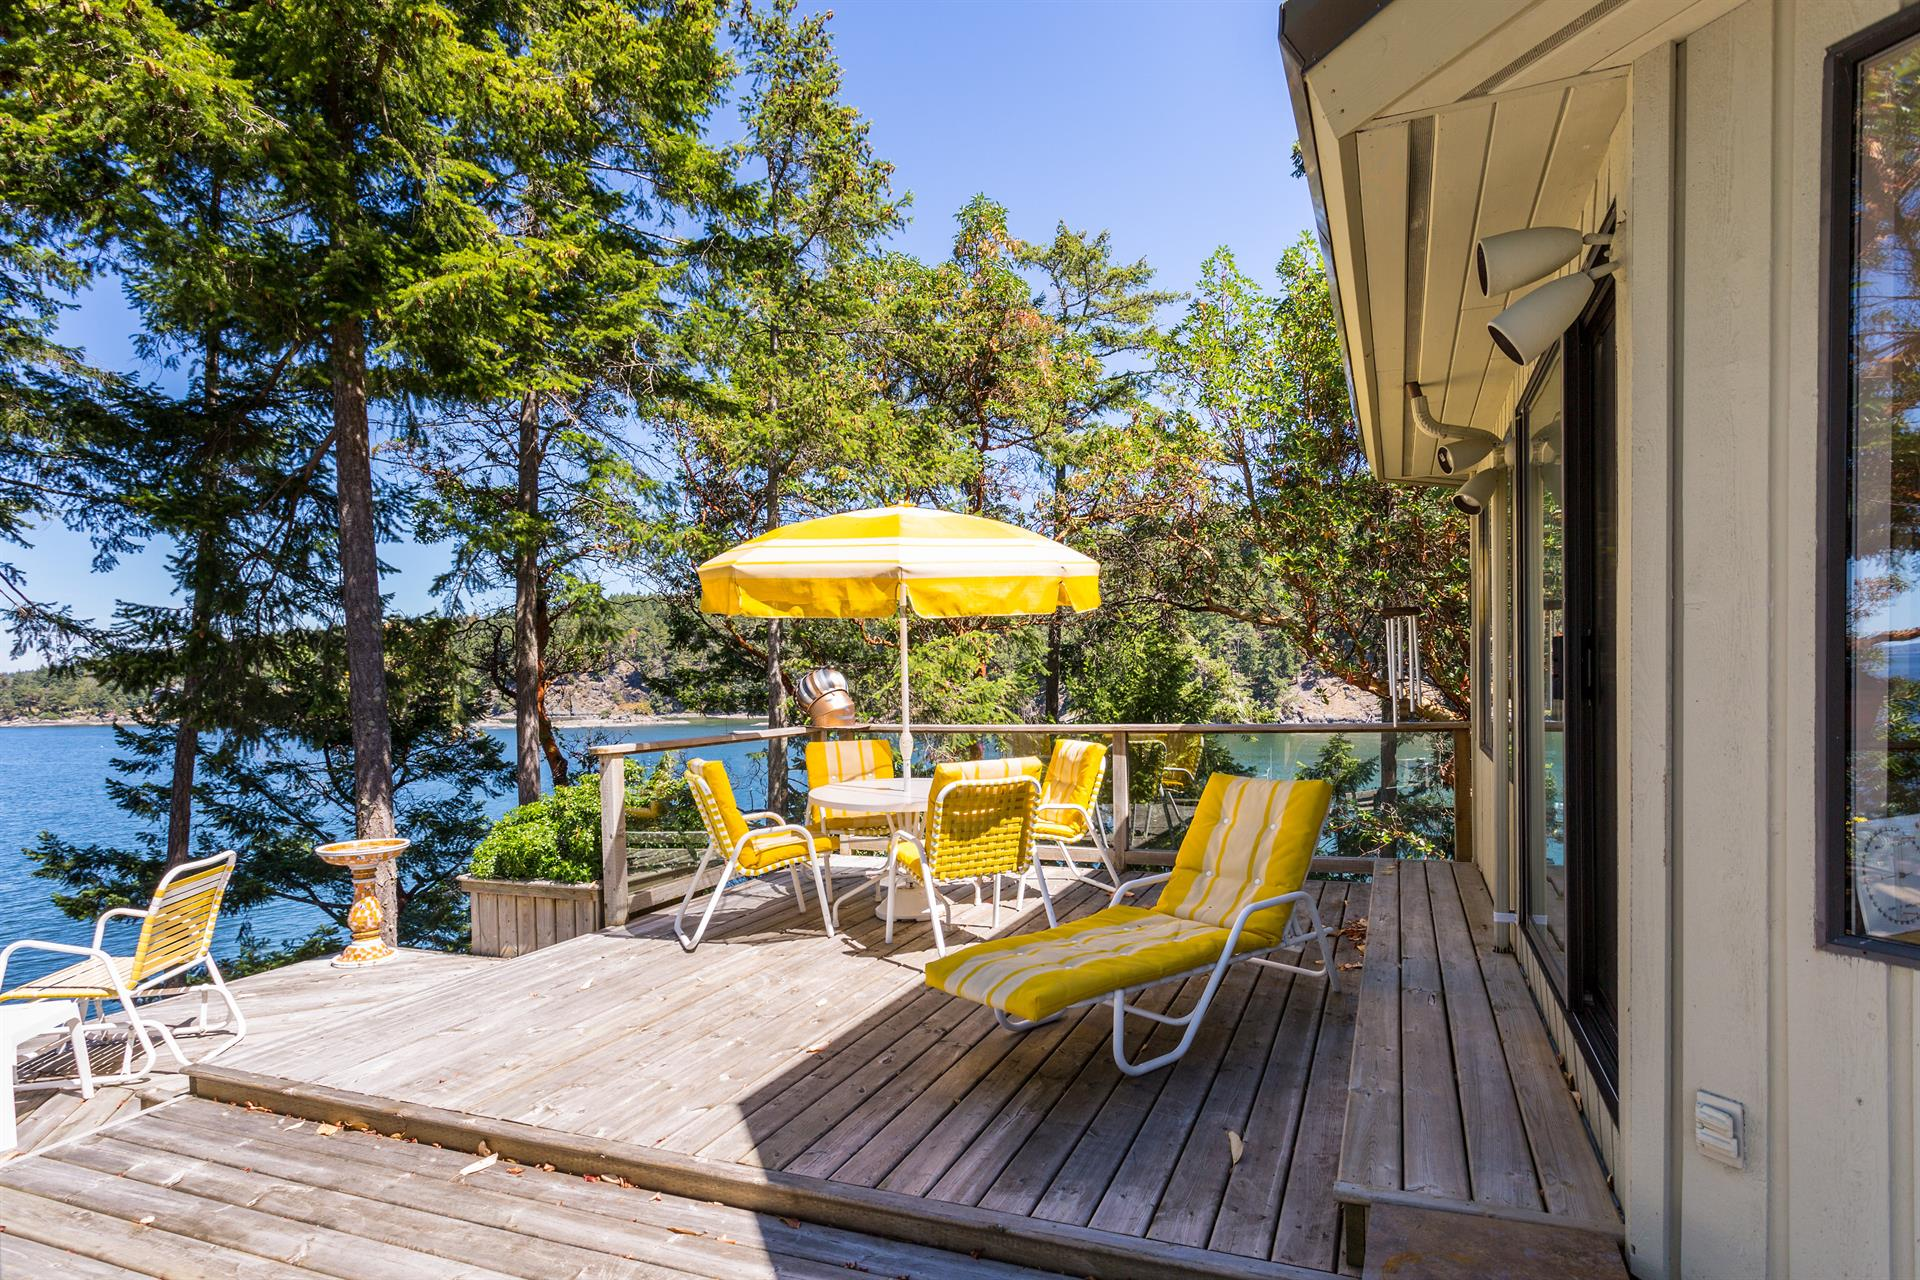 Additional photo for property listing at 2601 Harpoon Rd Pender Island, Colombie-Britannique,Canada